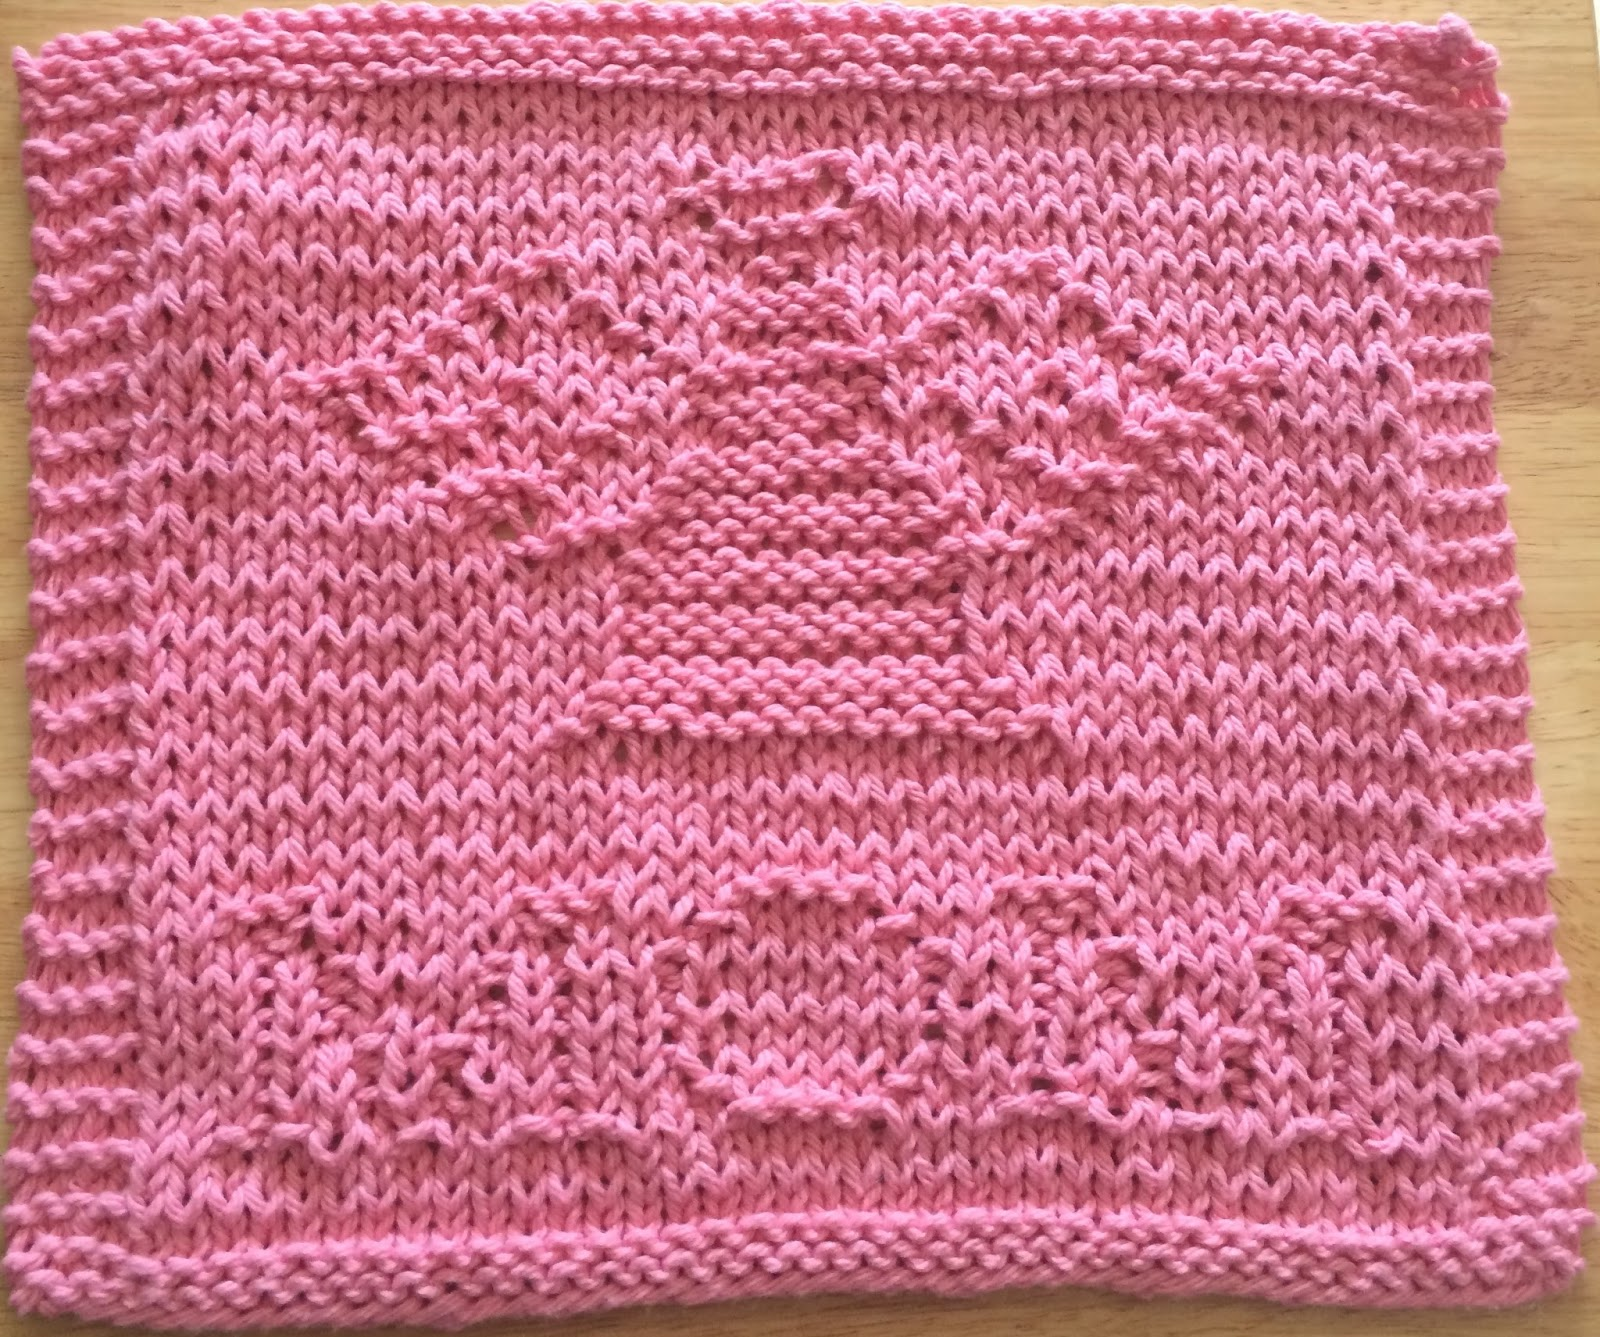 Breast Cancer Knitting Patterns : 1000+ images about Knit Cure for Cancer on Pinterest Knit Dishcloth Pattern...